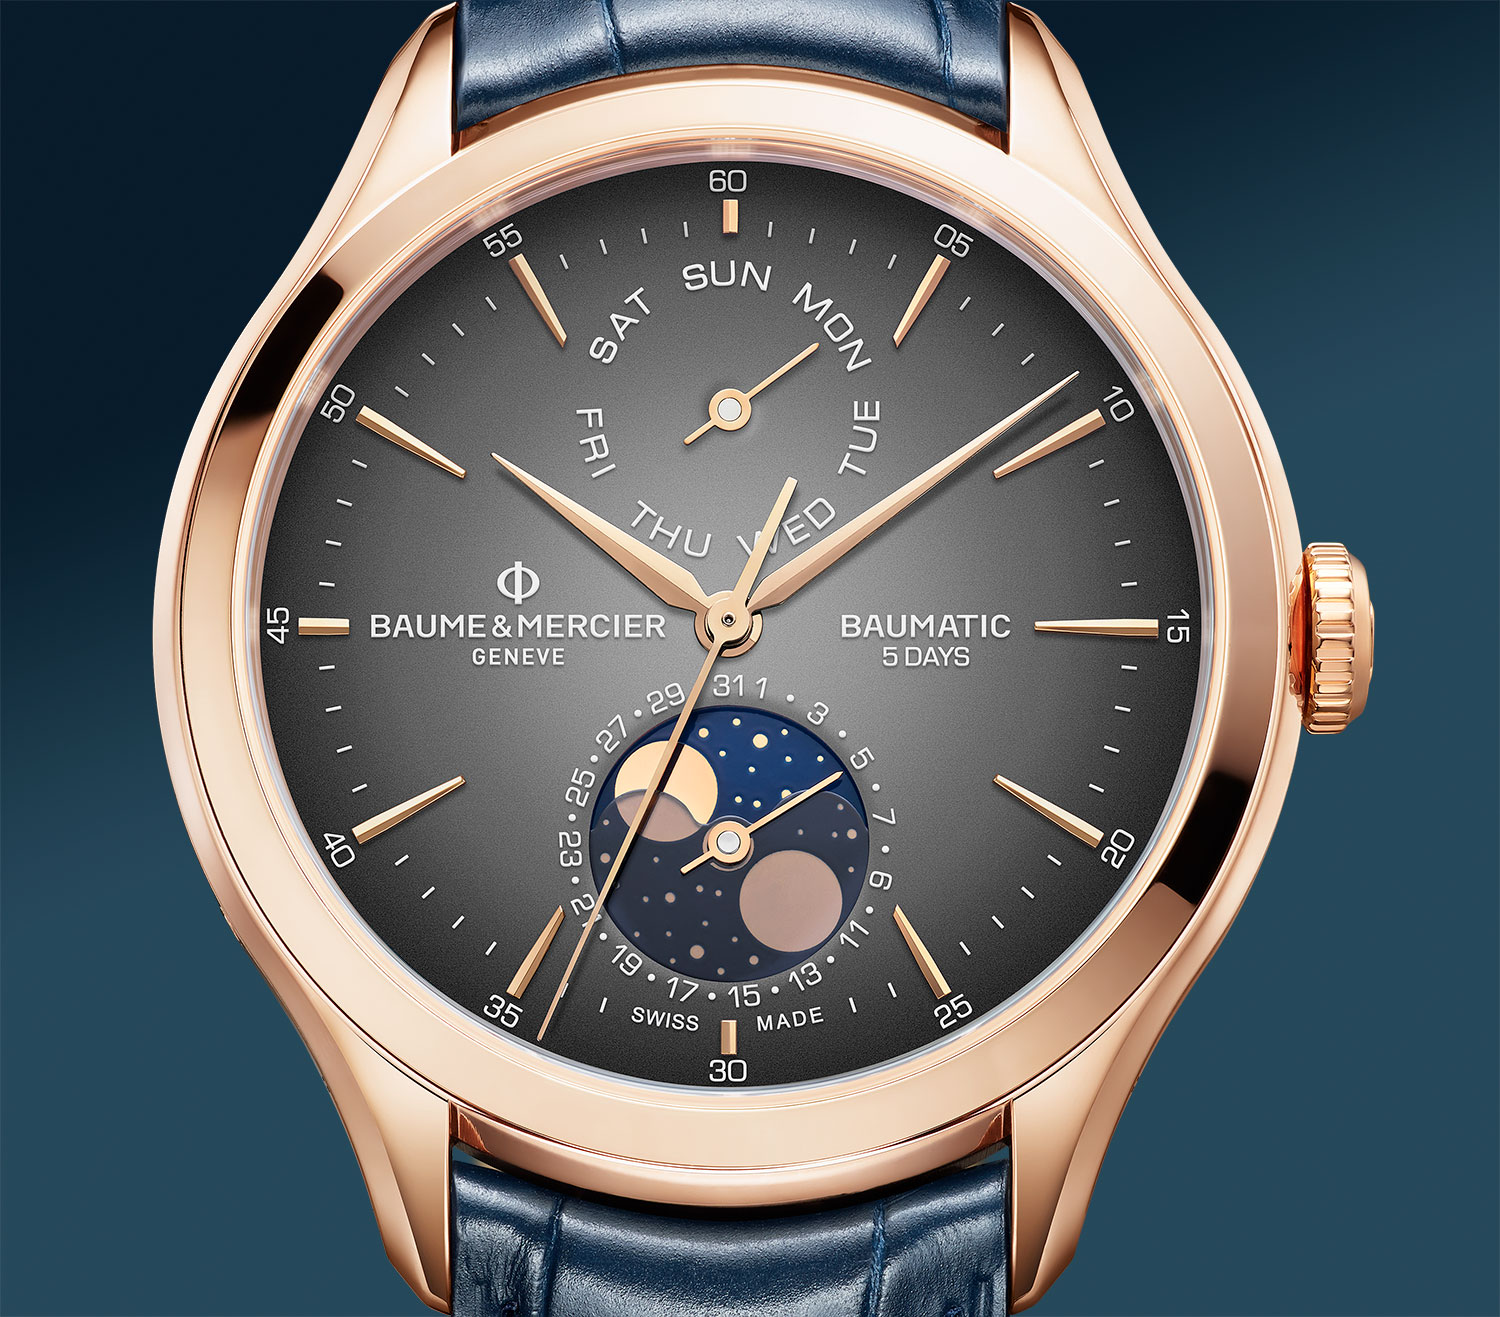 Baume & Mercier Baumatic Day Date Moon Phase